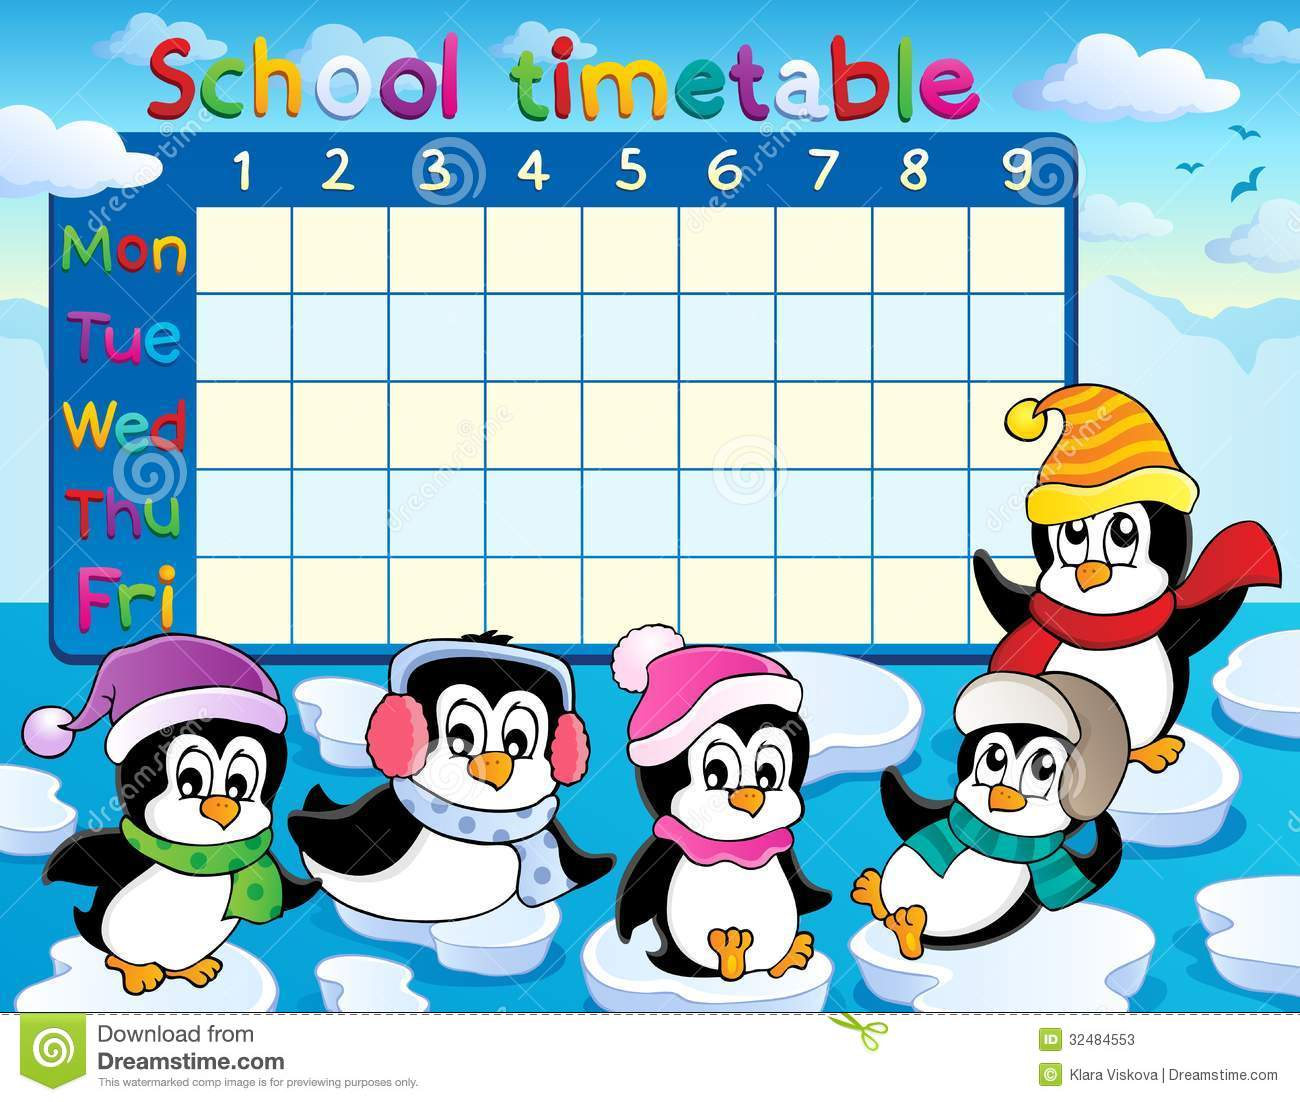 School Timetable Theme Image 6 Royalty Free Images Image – School Time Table Designs